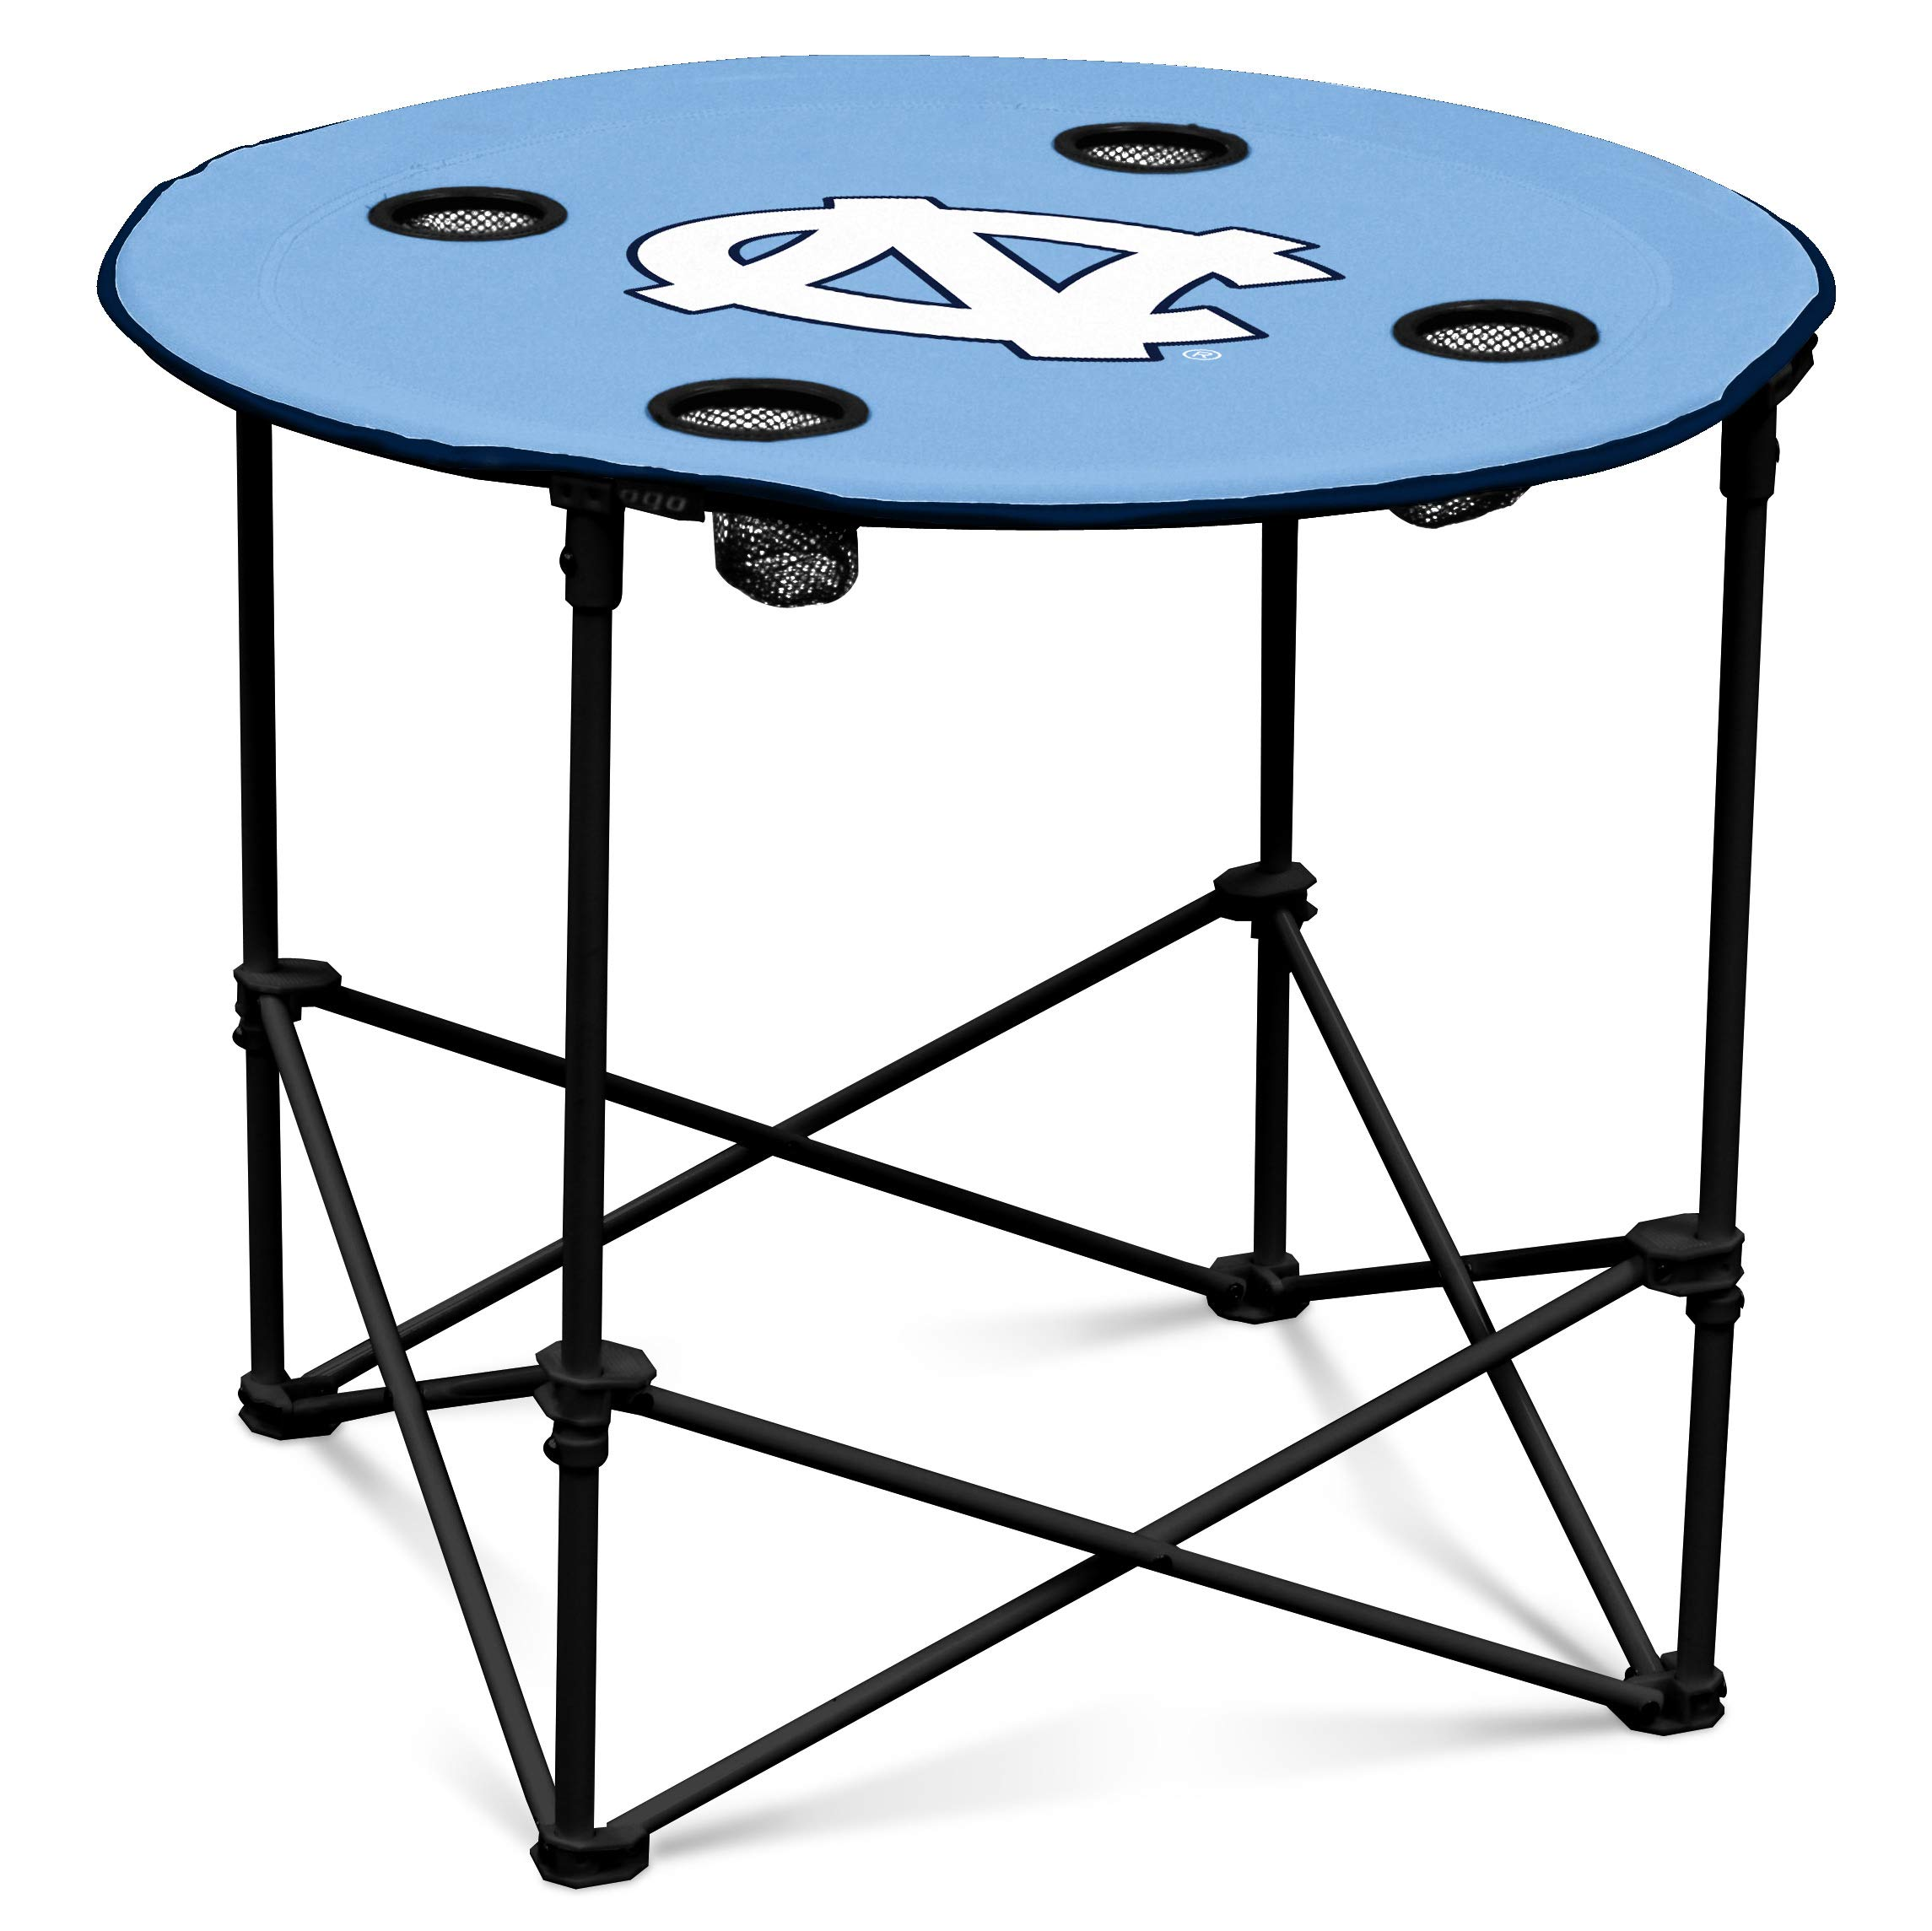 North Carolina Tarheels Collapsible Round Table with 4 Cup Holders and Carry Bag by Logo Brands